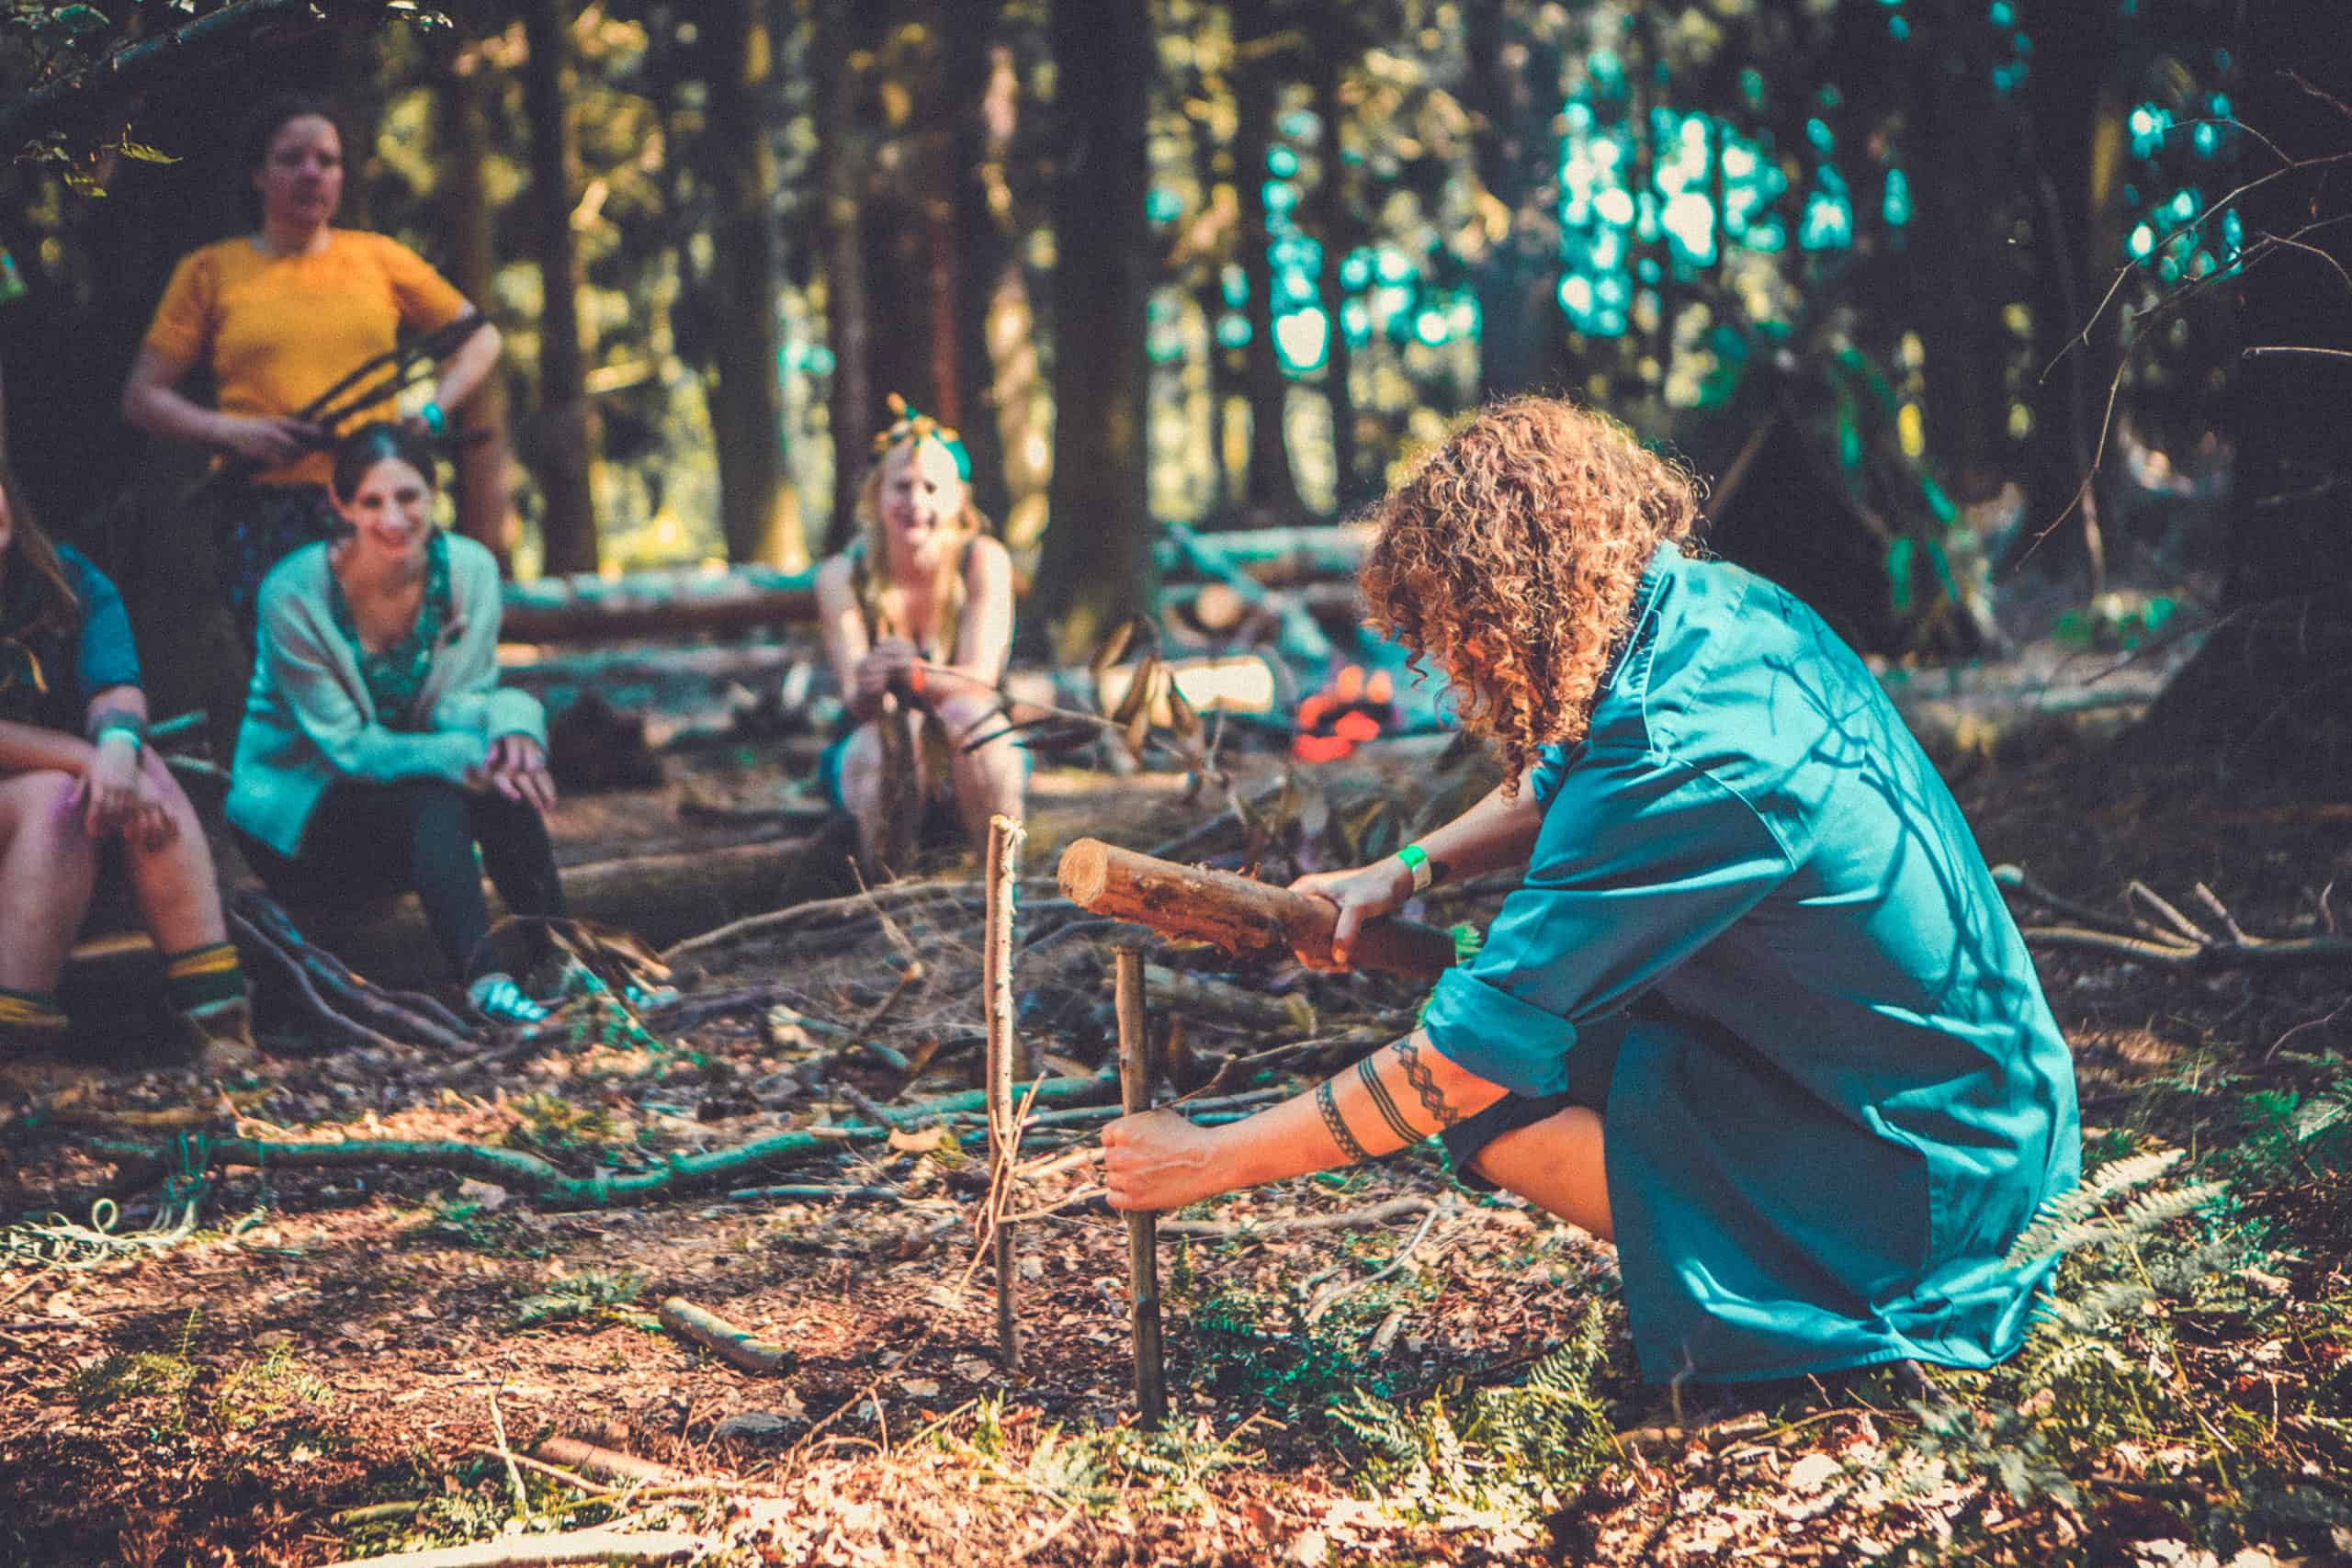 People learning new skills at the shelter building activity at Camp Wildfire. A summer weekend break in a forest near London and Kent. An outdoor woodland retreat featuring adventure activities, live music, DJs, parties and camping. Half summer adventure activity camp, half music festival, for adults only.